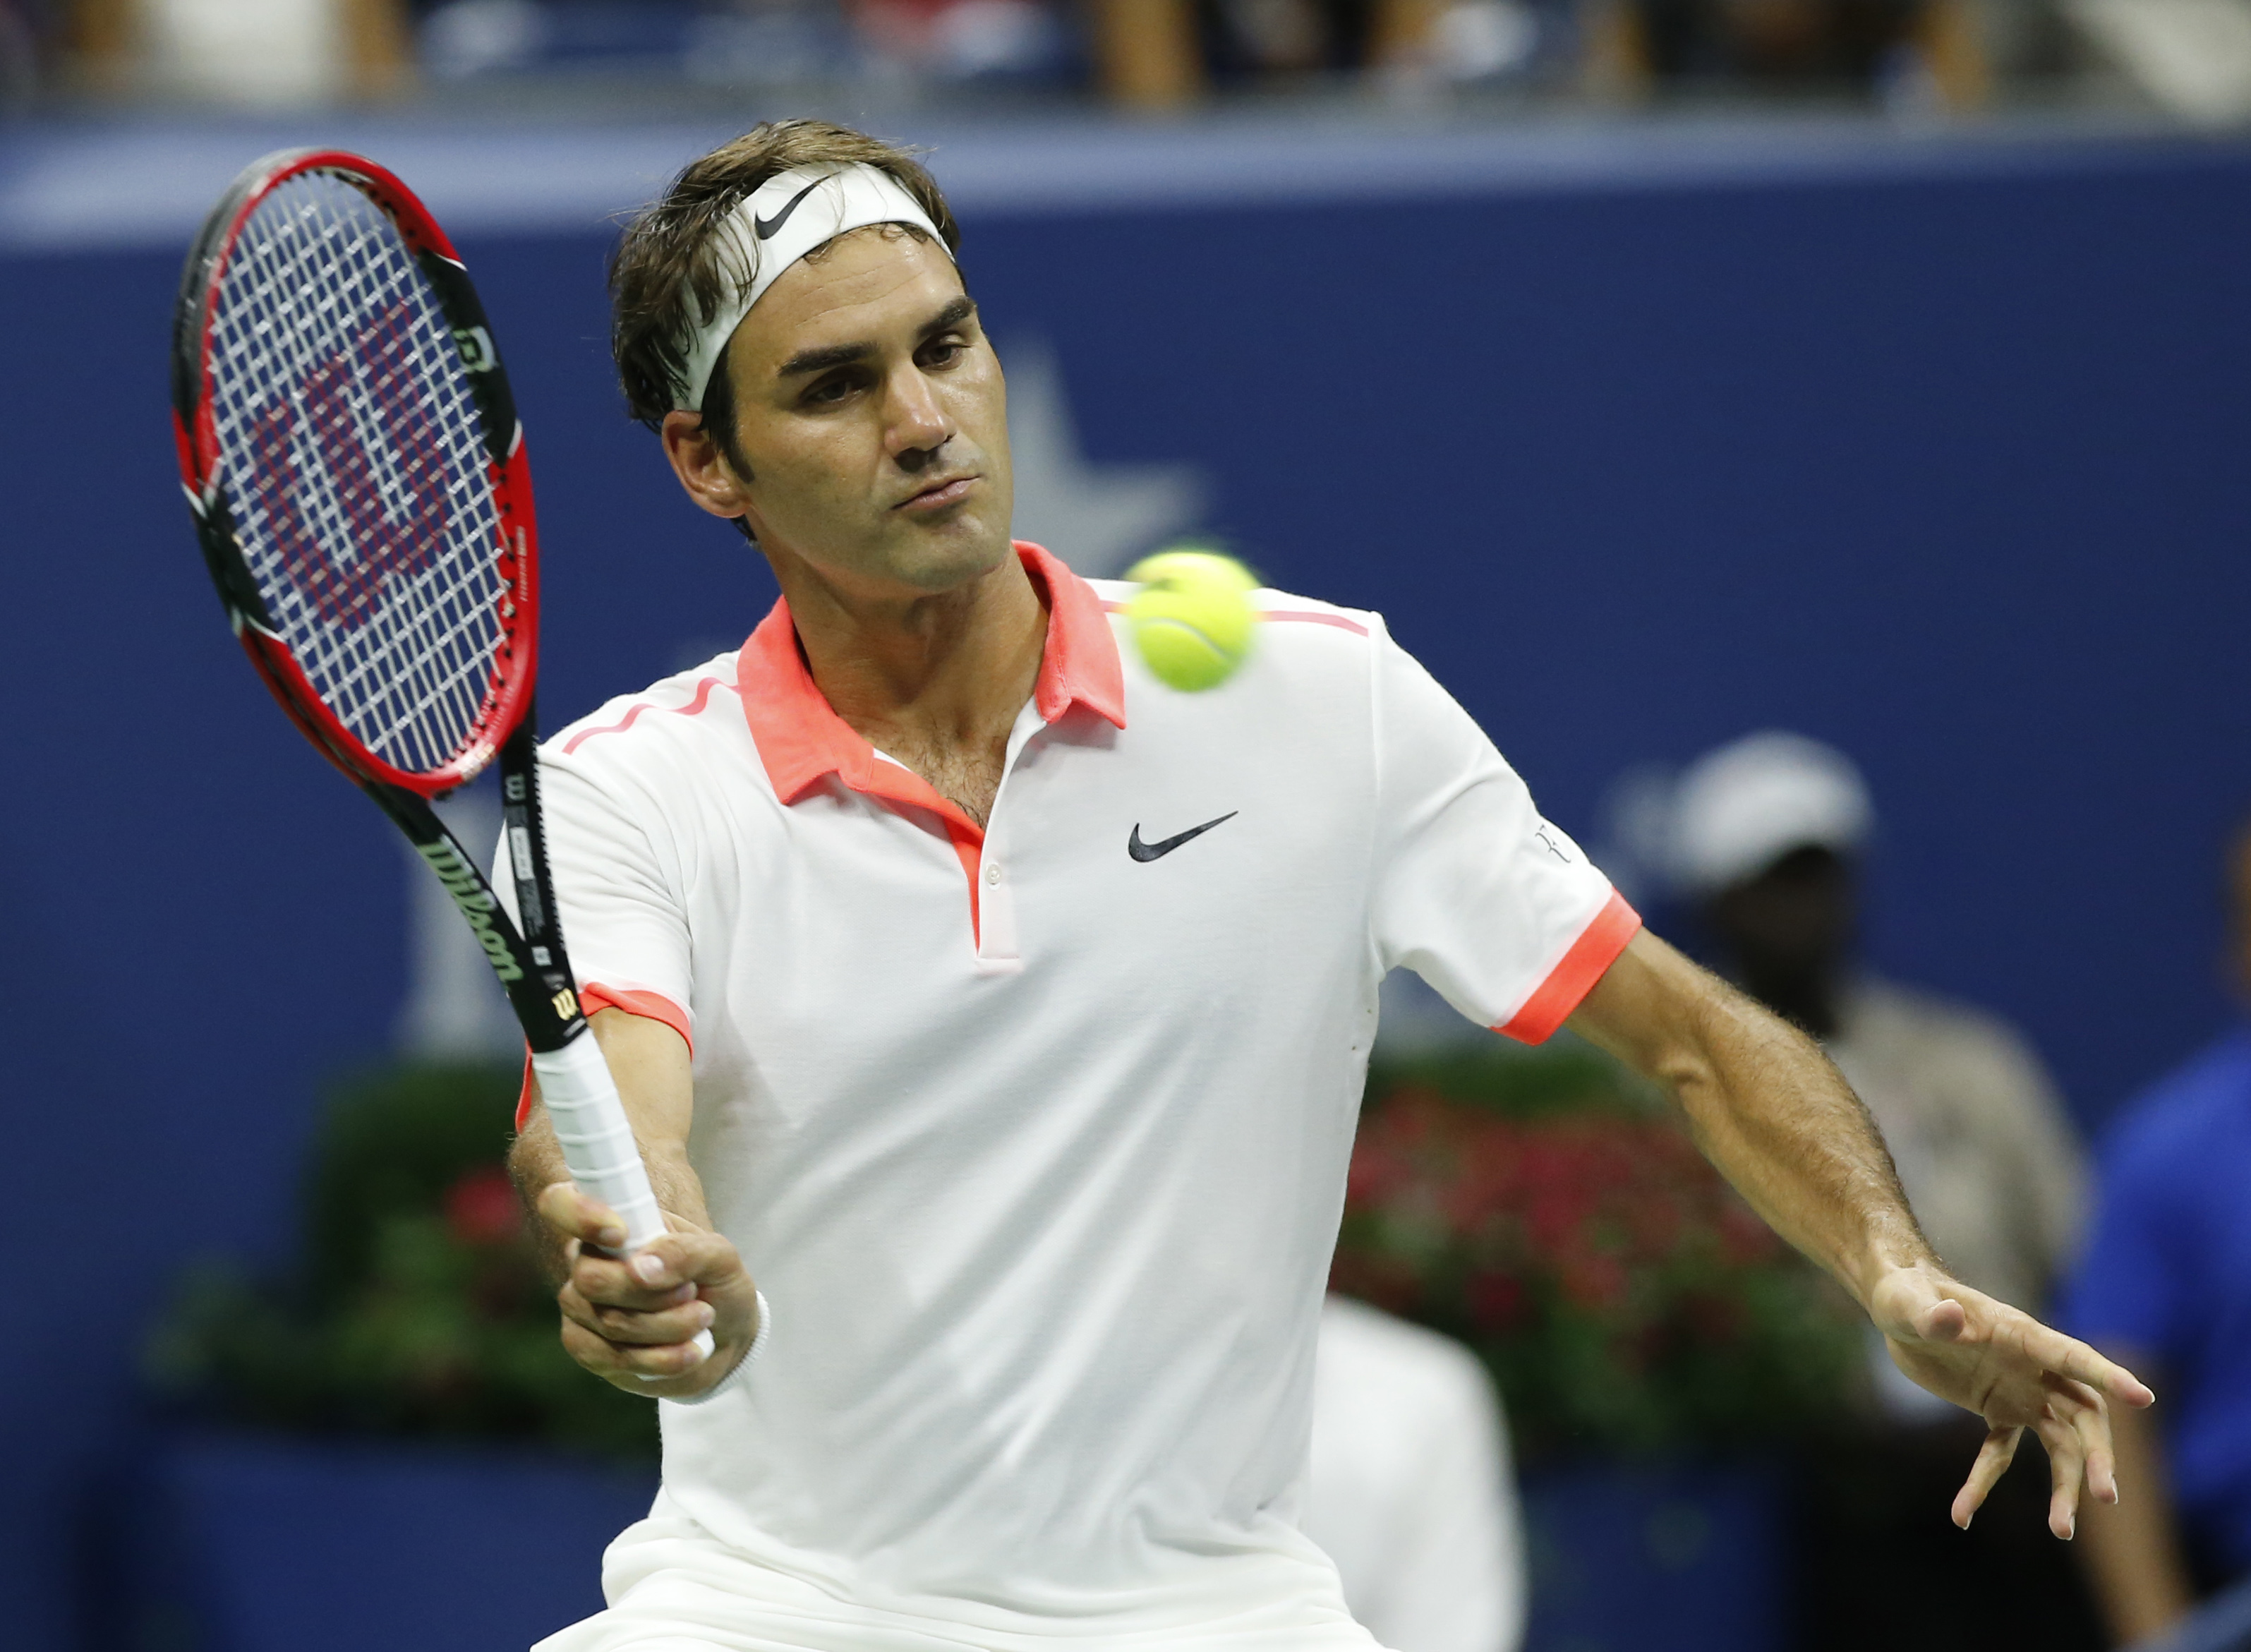 Roger Federer, of Switzerland, returns the ball during his fourth round match against John Isner at the U.S. Open tennis tournament in New York, Monday, Sept. 7, 2015.  (AP Photo/Kathy Willens)